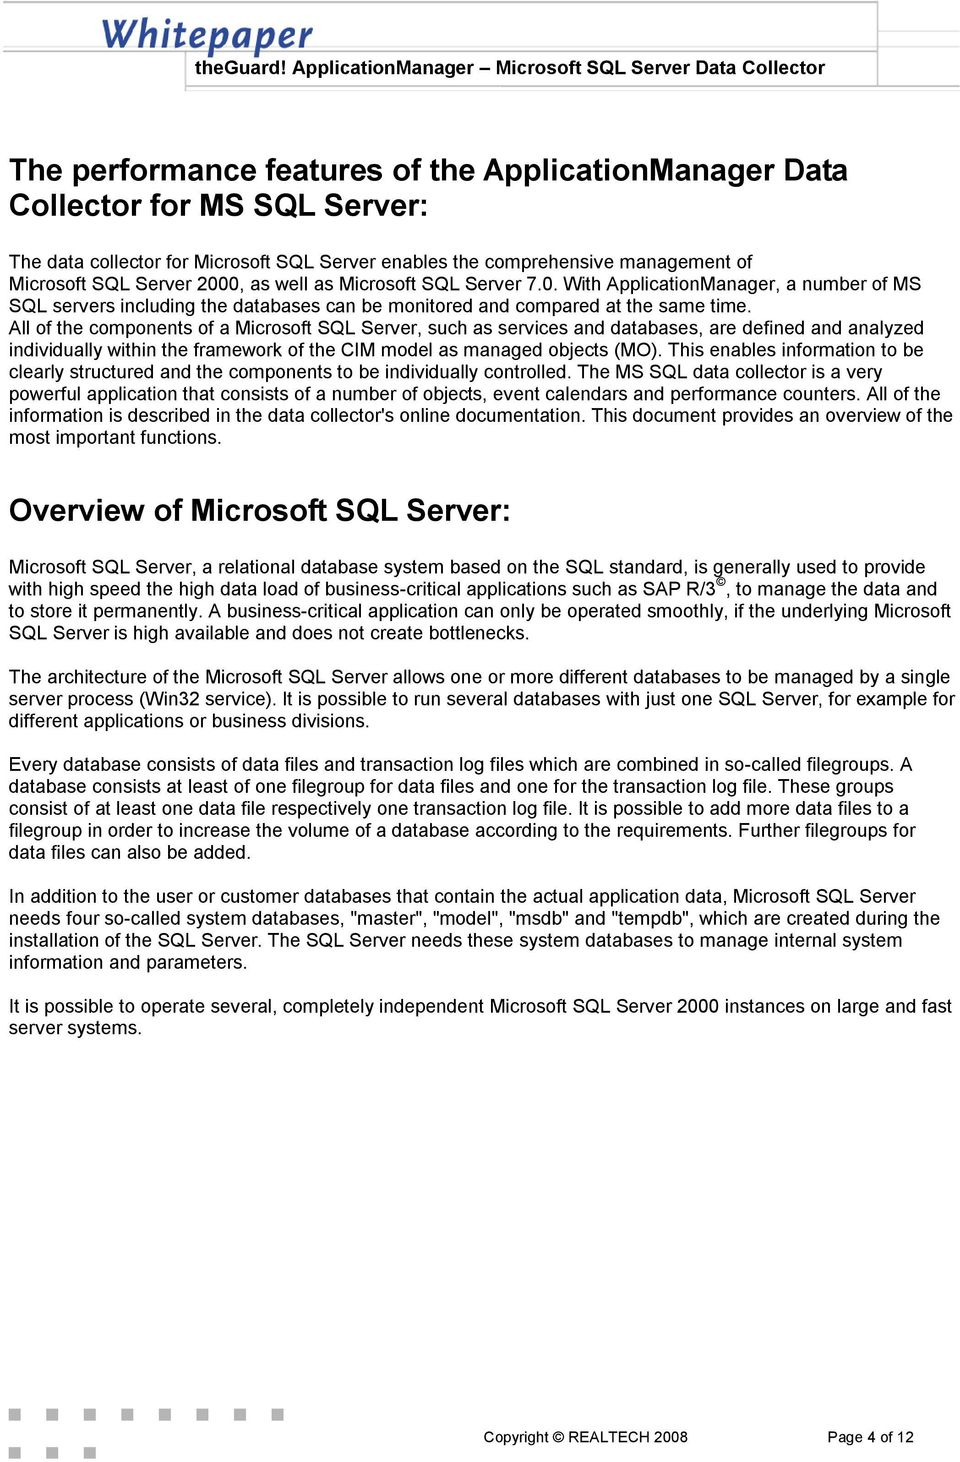 All of the components of a Microsoft SQL Server, such as services and databases, are defined and analyzed individually within the framework of the CIM model as managed objects (MO).